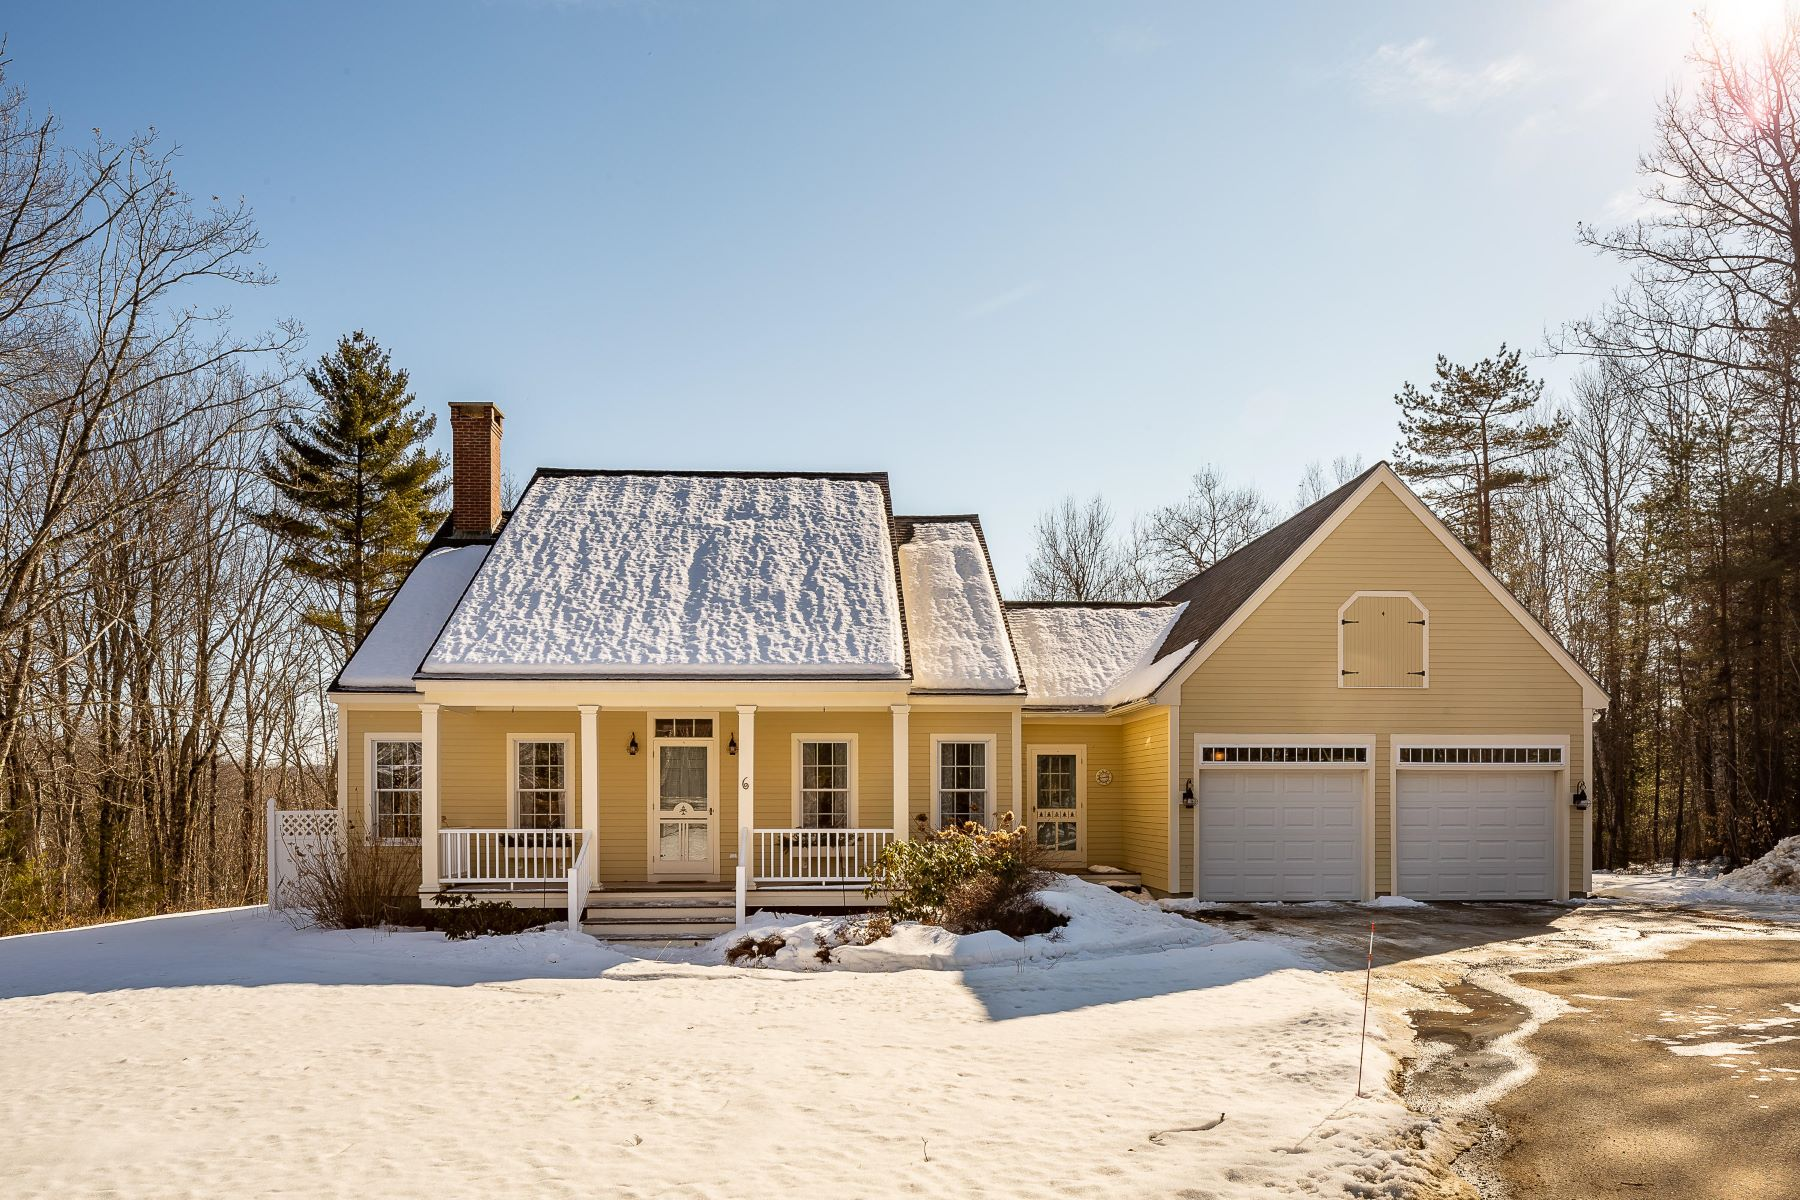 Single Family Homes for Active at 6 Mirror Lake Lane Rockport, Maine 04856 United States